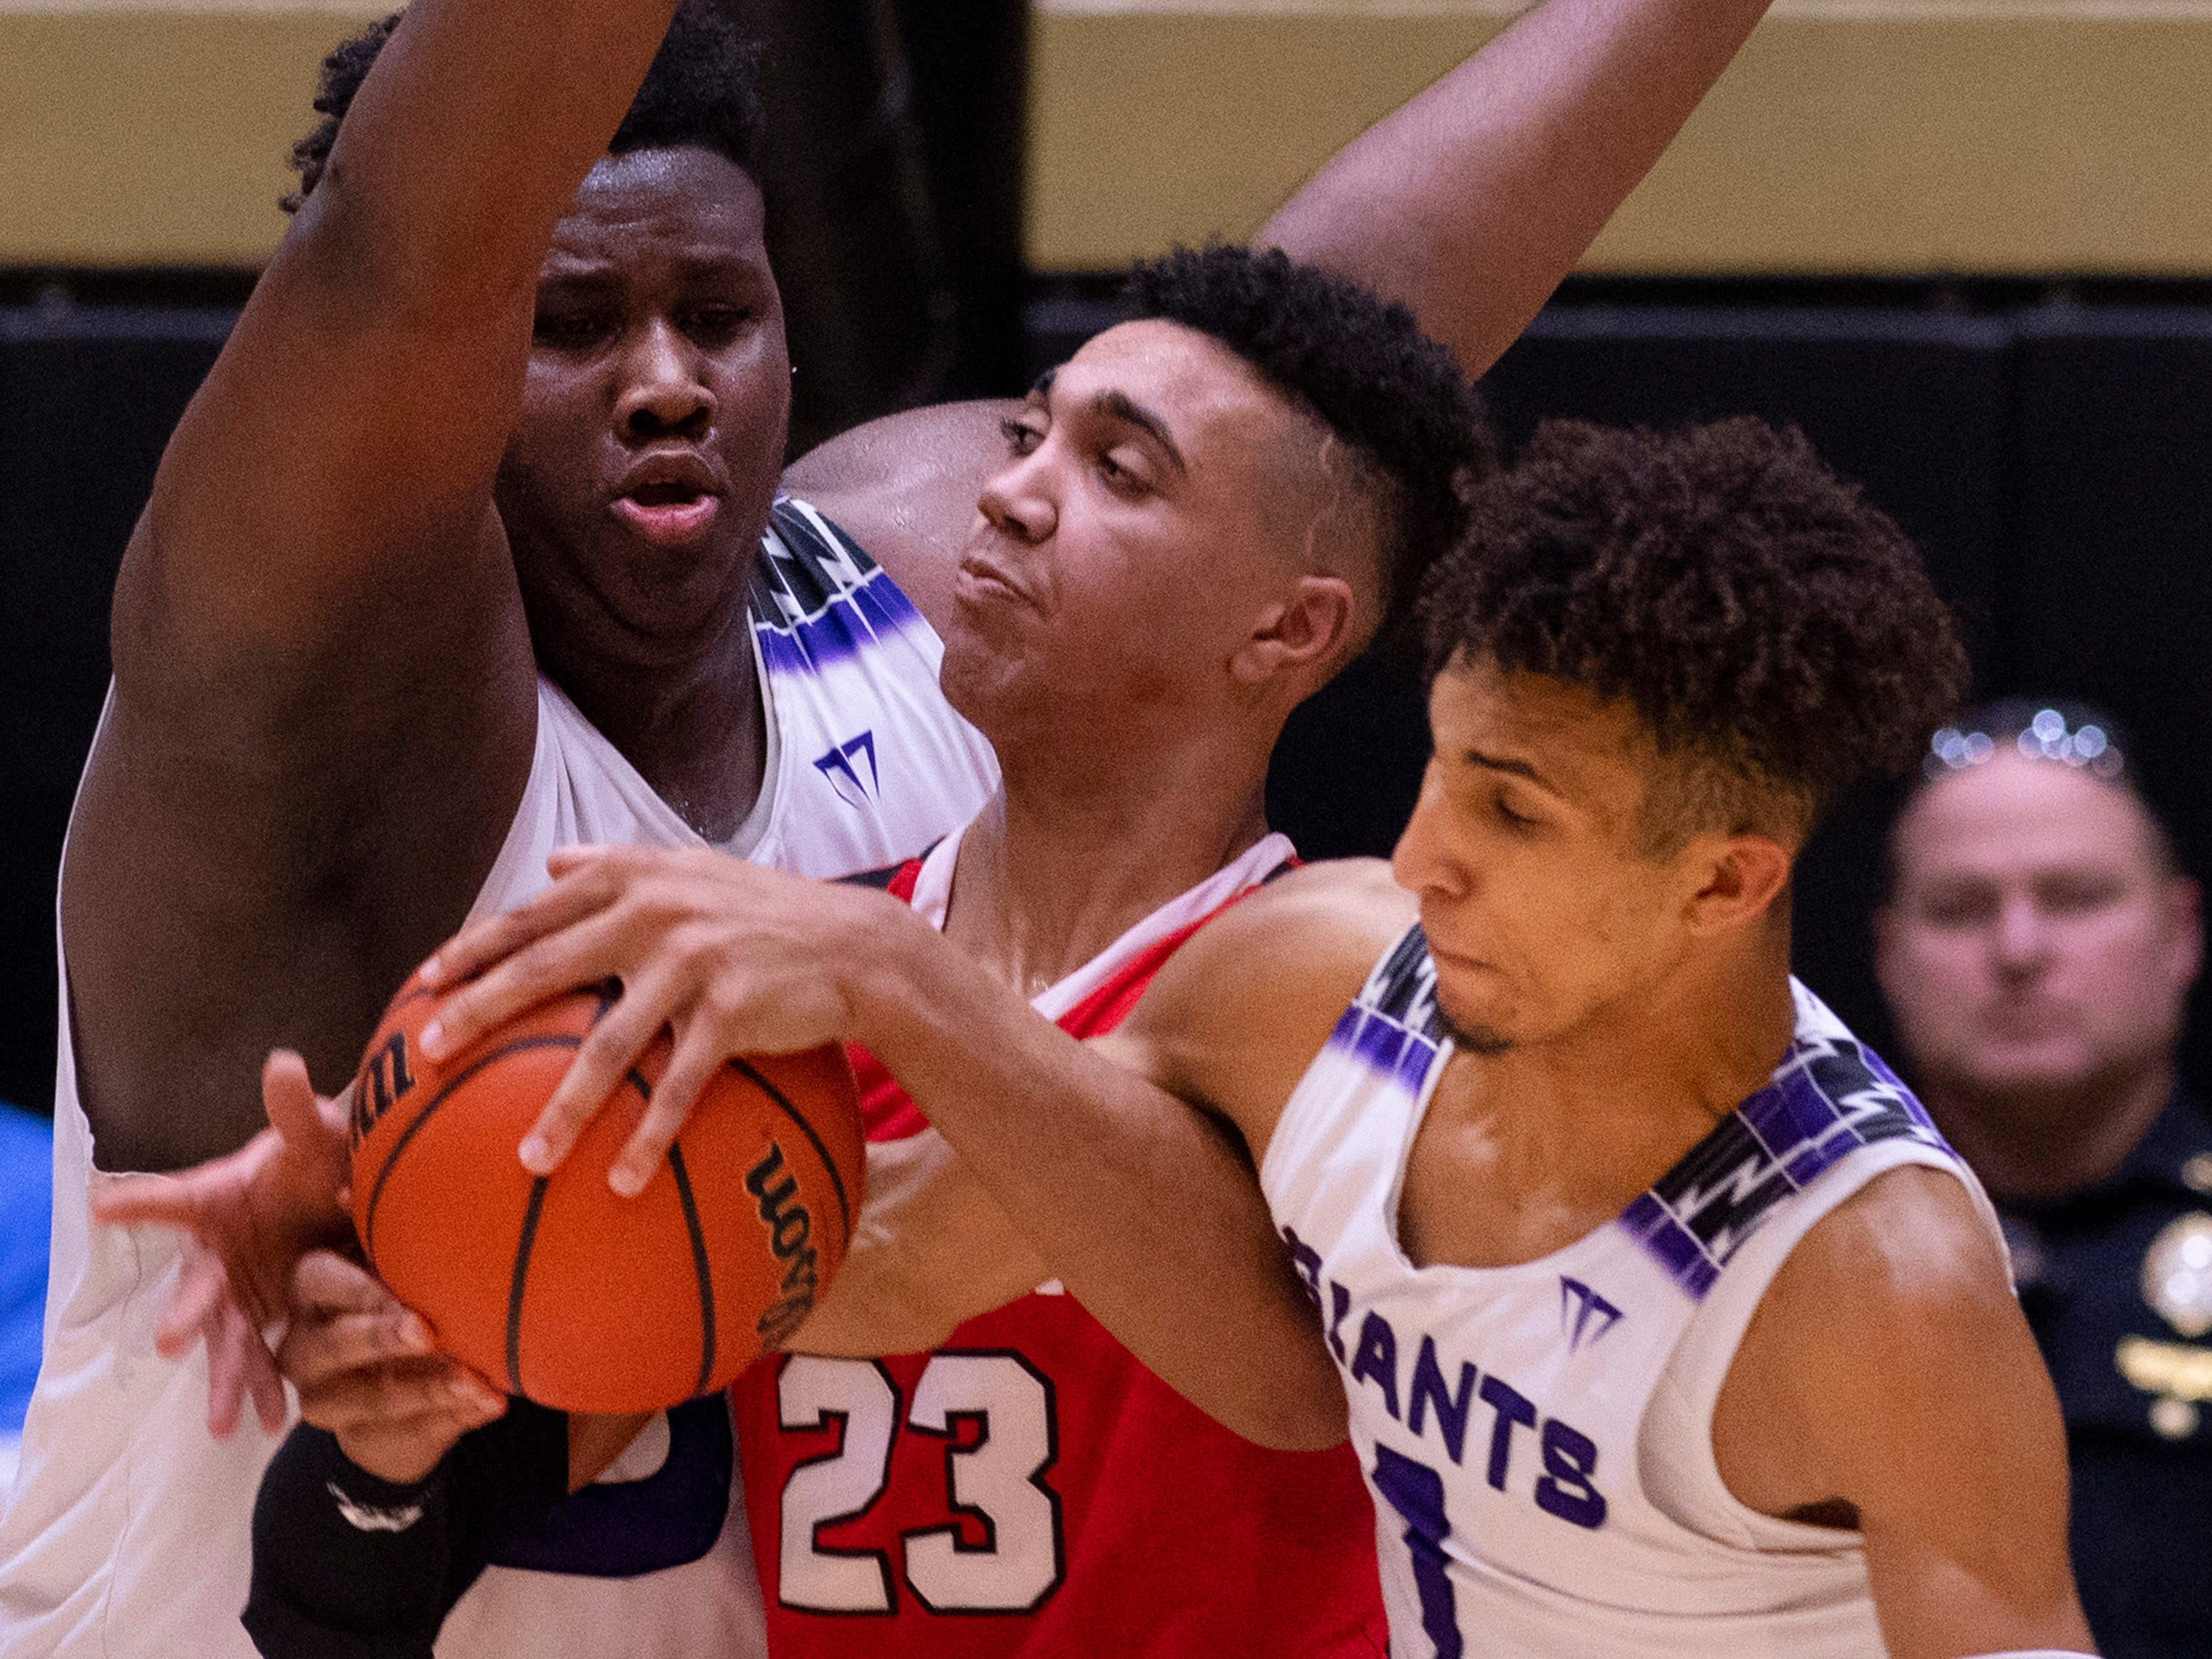 Center Grove's Trayce Jackson-Davis (23) is tangled up with Ben Davis's Dawand Jones (54) and Tyreese Nibbs (1) during the 4A Boys Indiana Semi-State Basketball Tournament at the Hatchet House in Washington, Ind., Saturday afternoon.